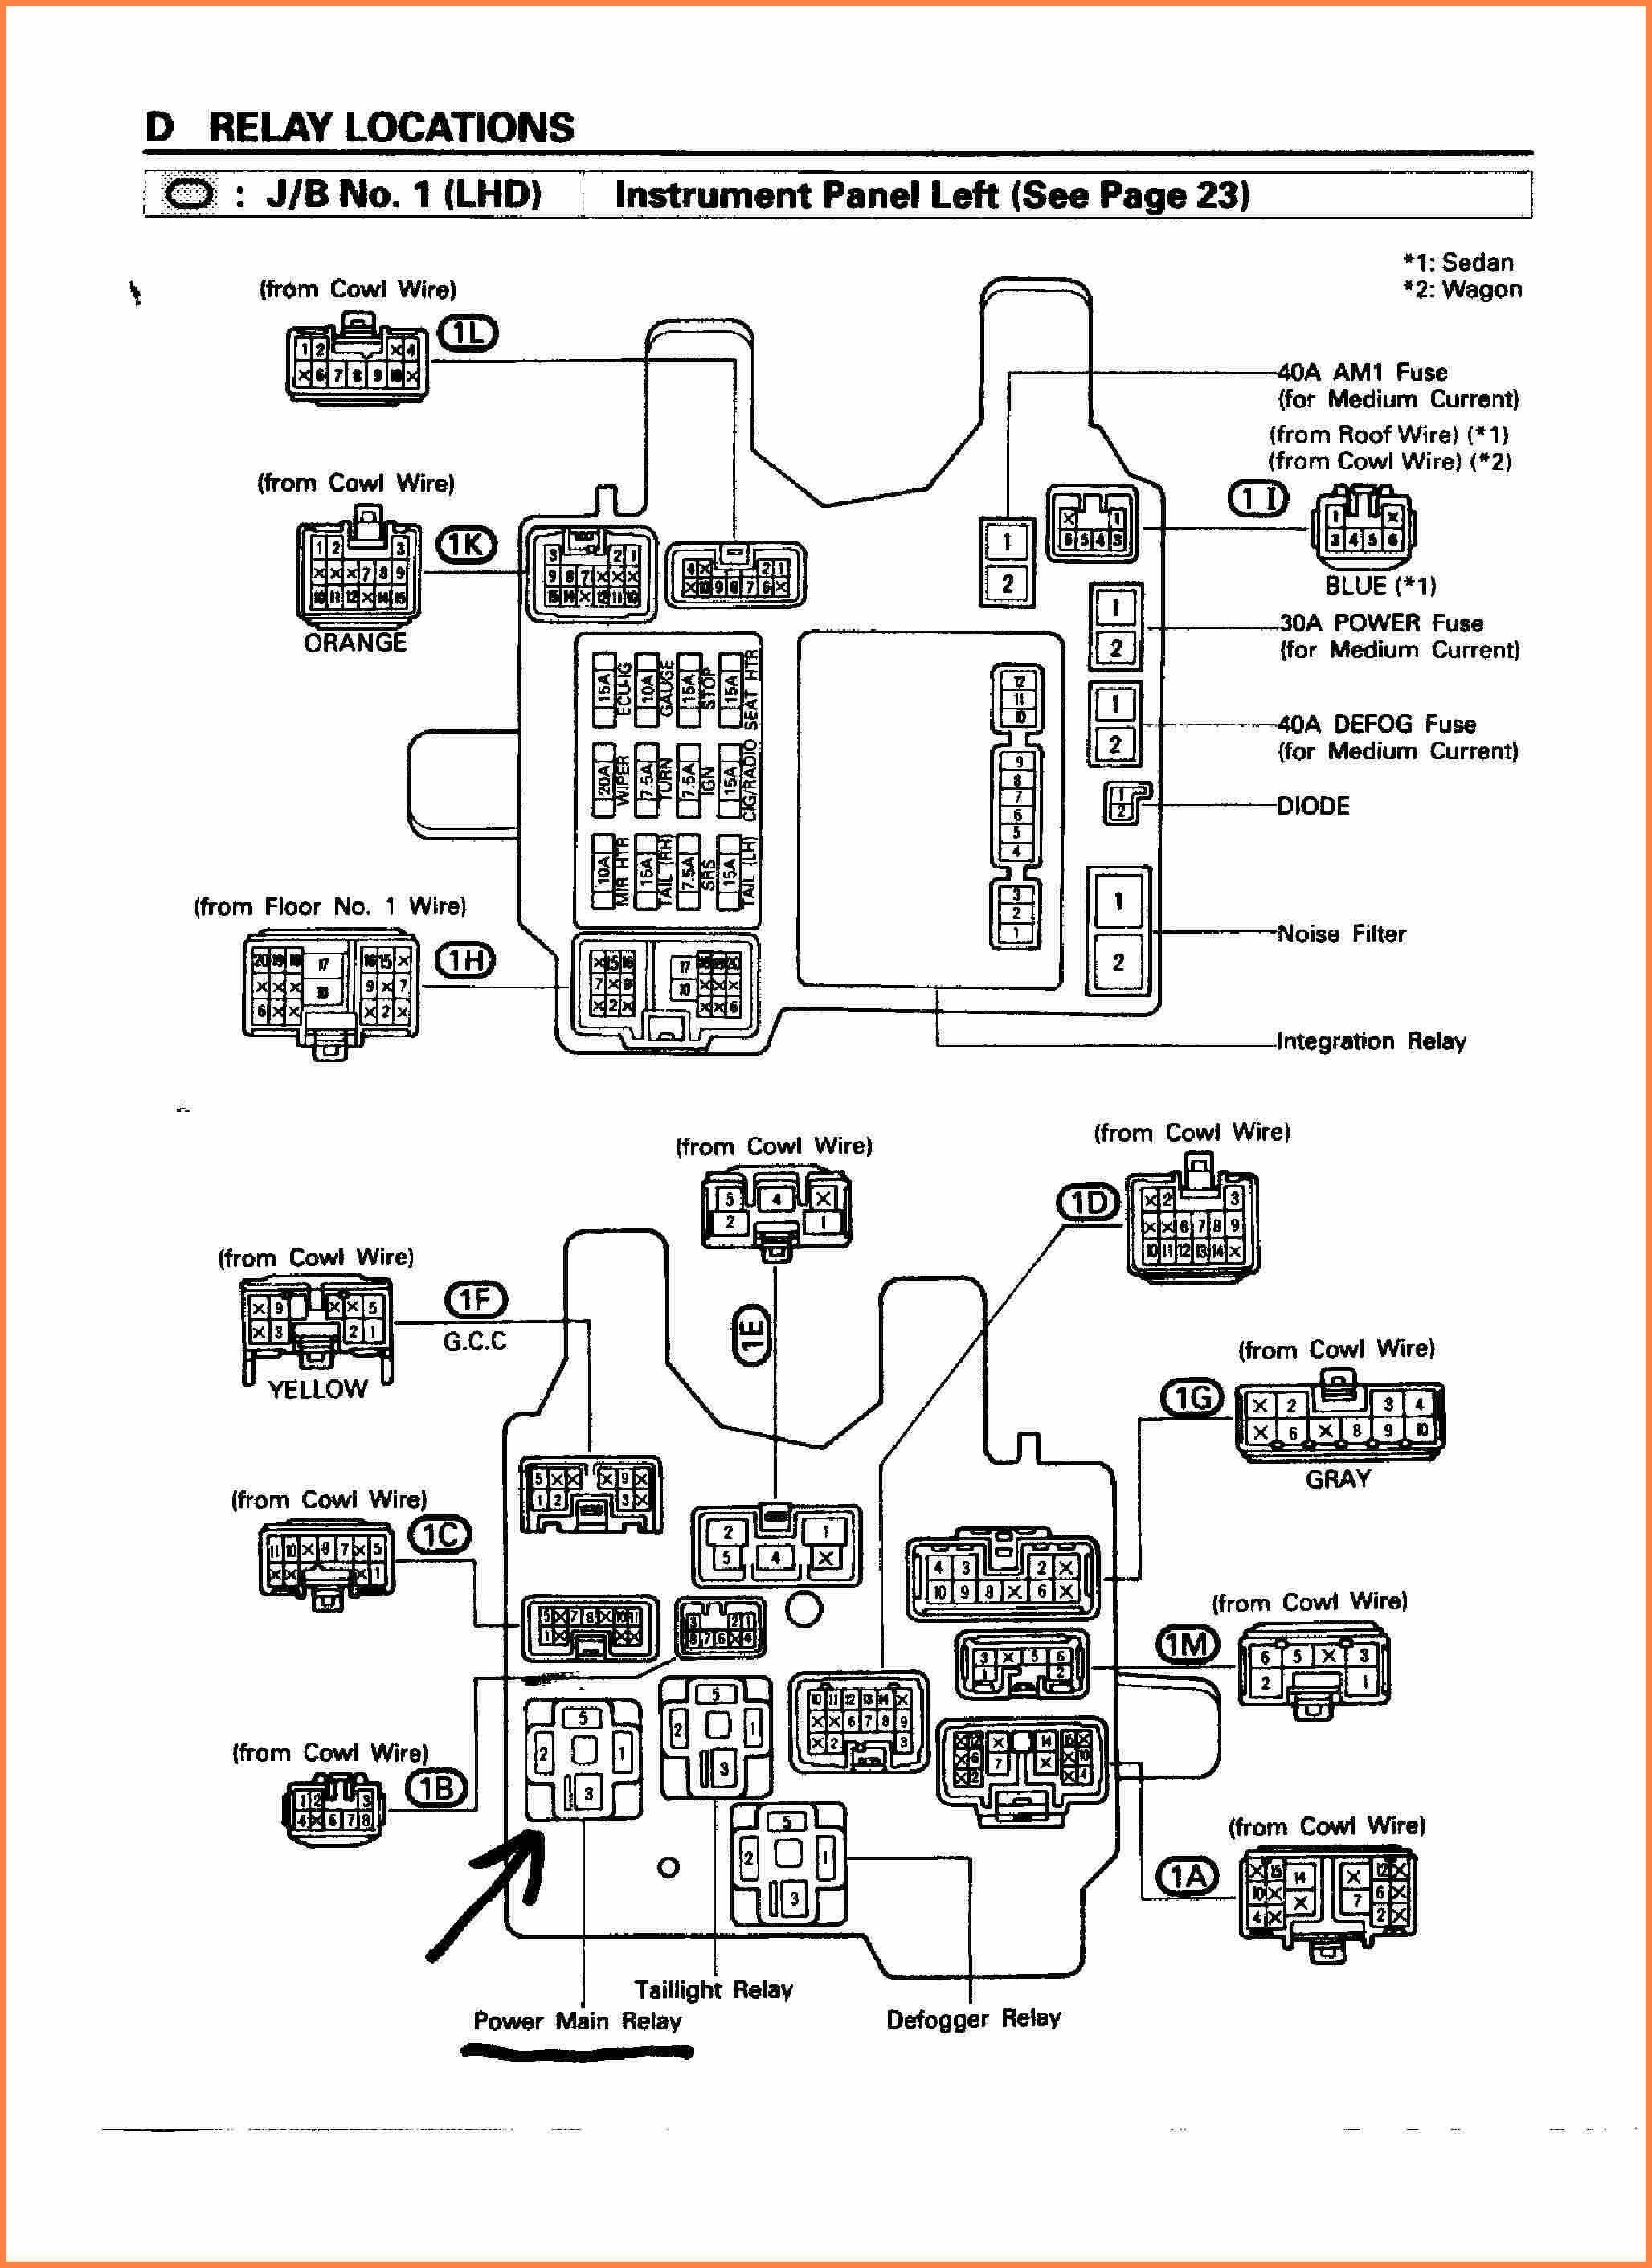 99 Camry Engine Diagram 1994 Camry Le Wiring Diagram Another Blog About Wiring Diagram • Of 99 Camry Engine Diagram toyota Camry How to Reset Ecu and Check Engine Light